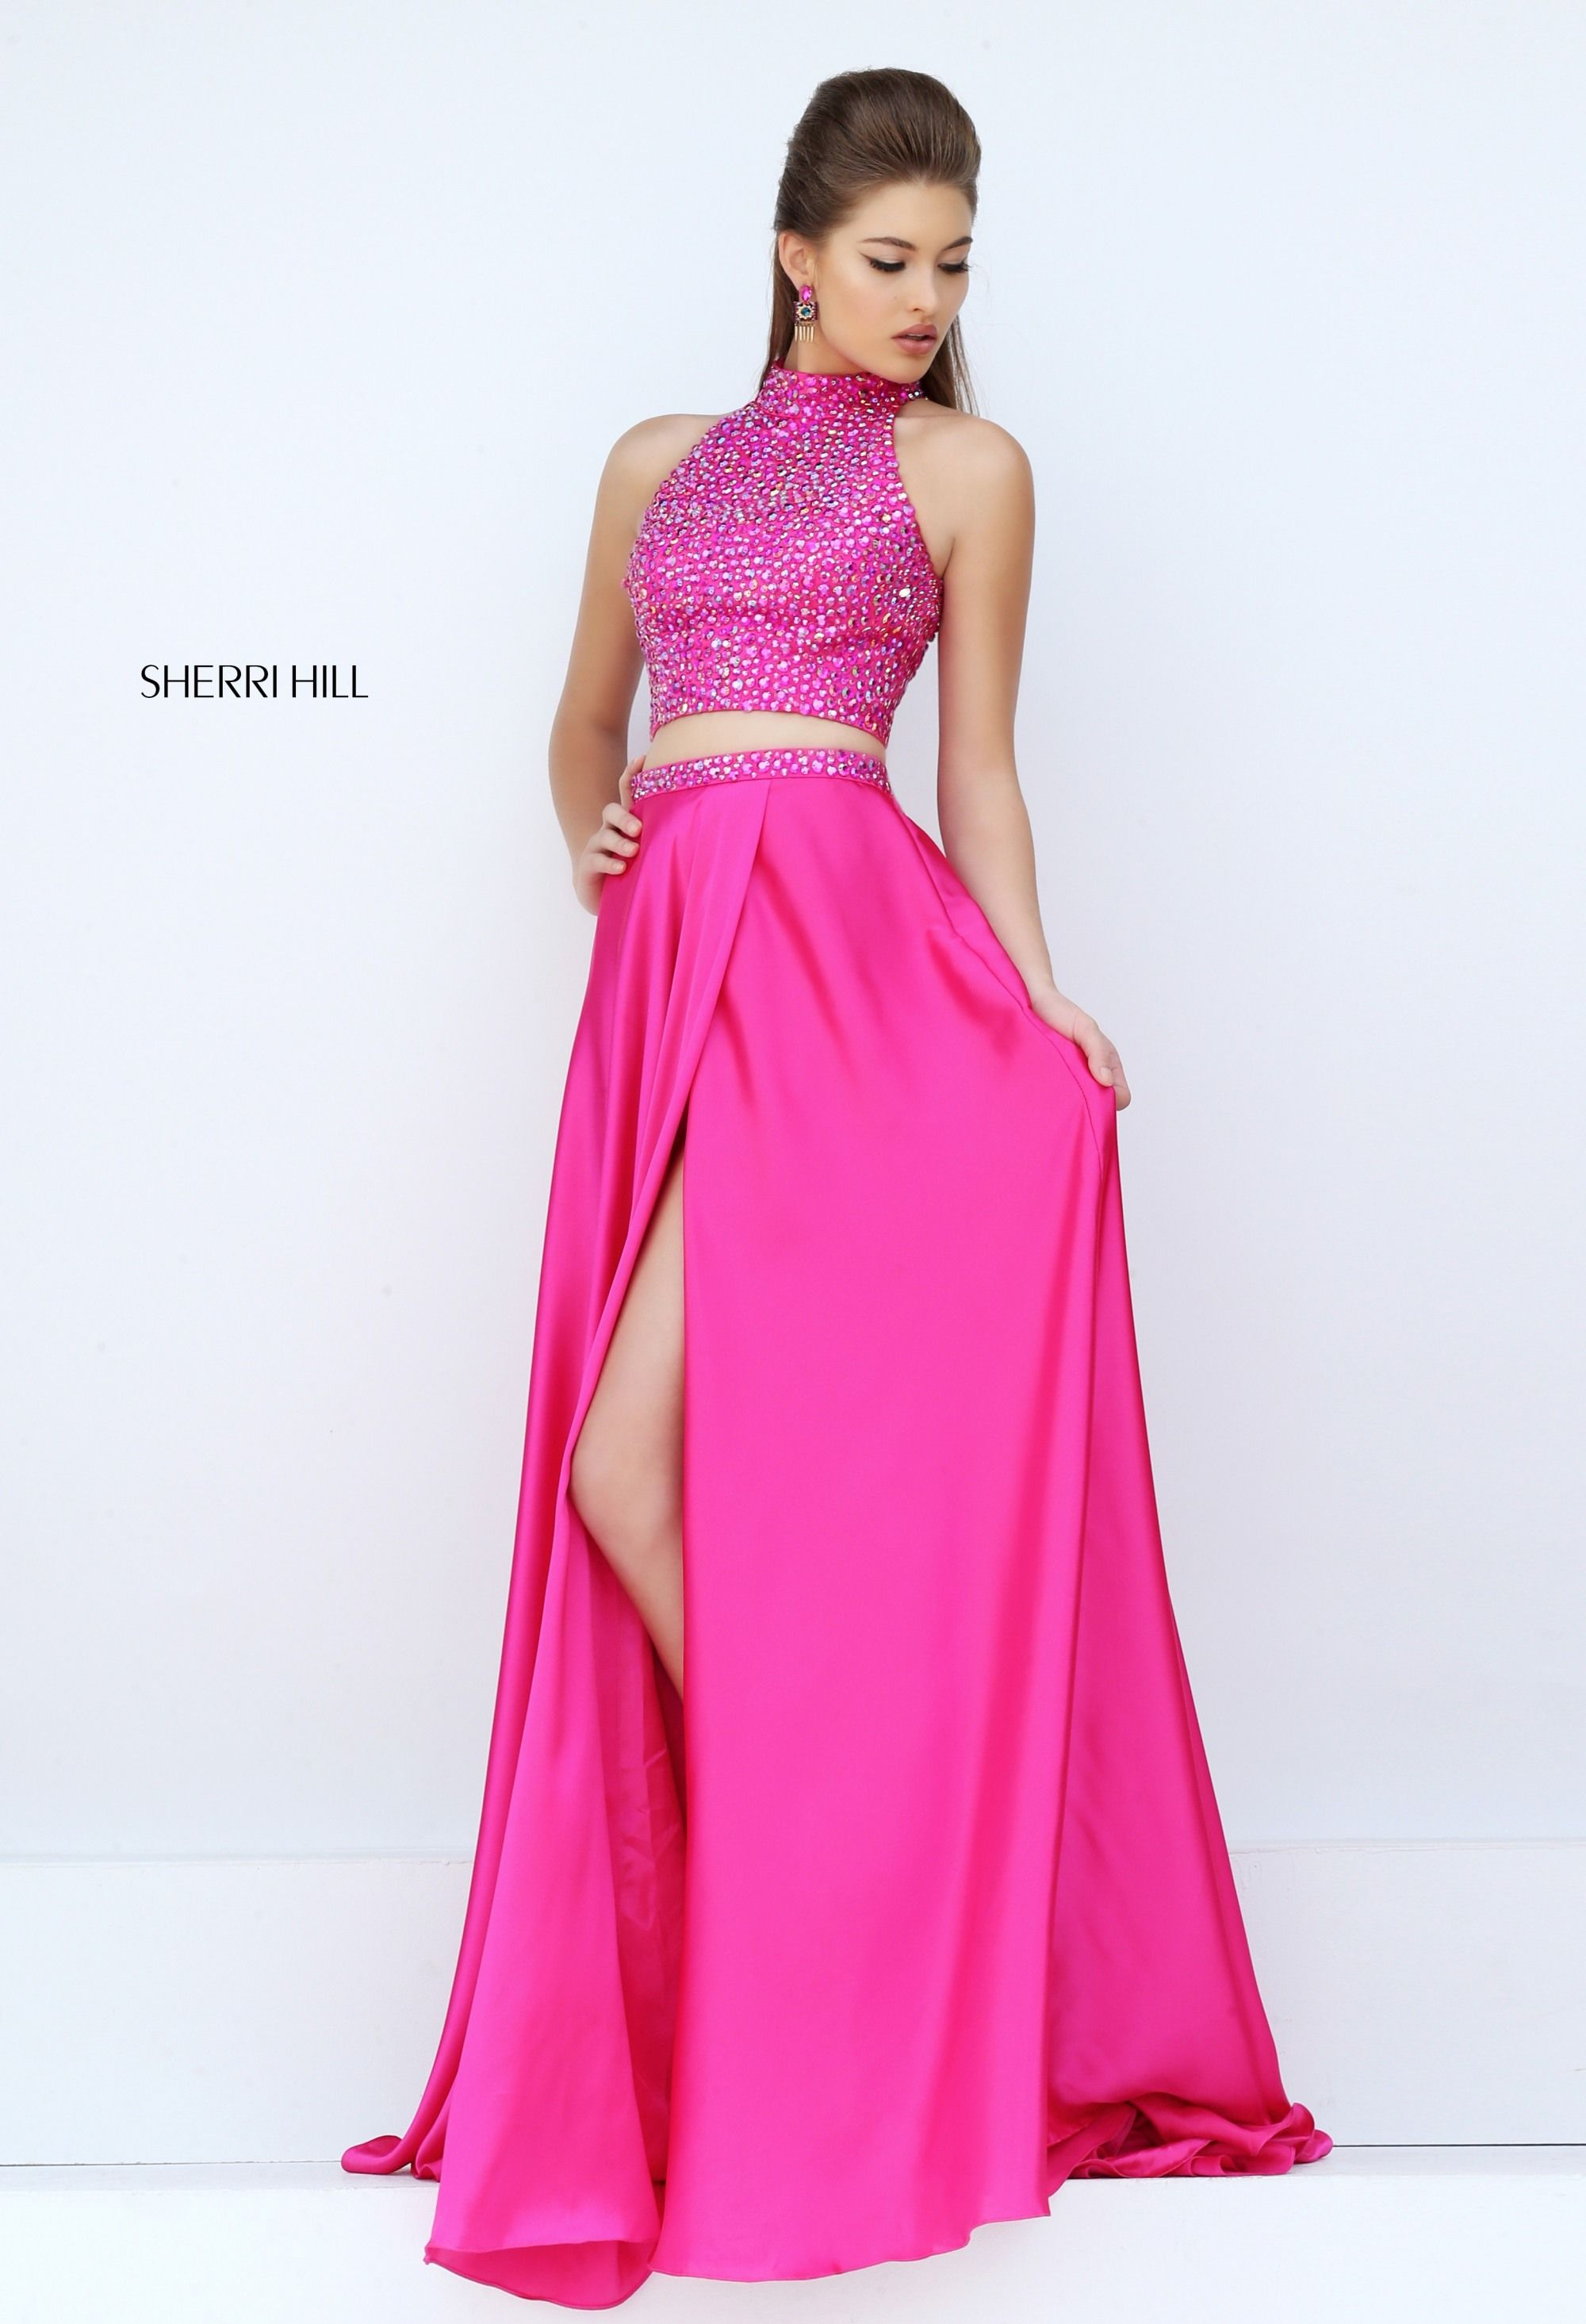 Sherri Hill fuschia bright pink hot pink playful halter top neckline ...